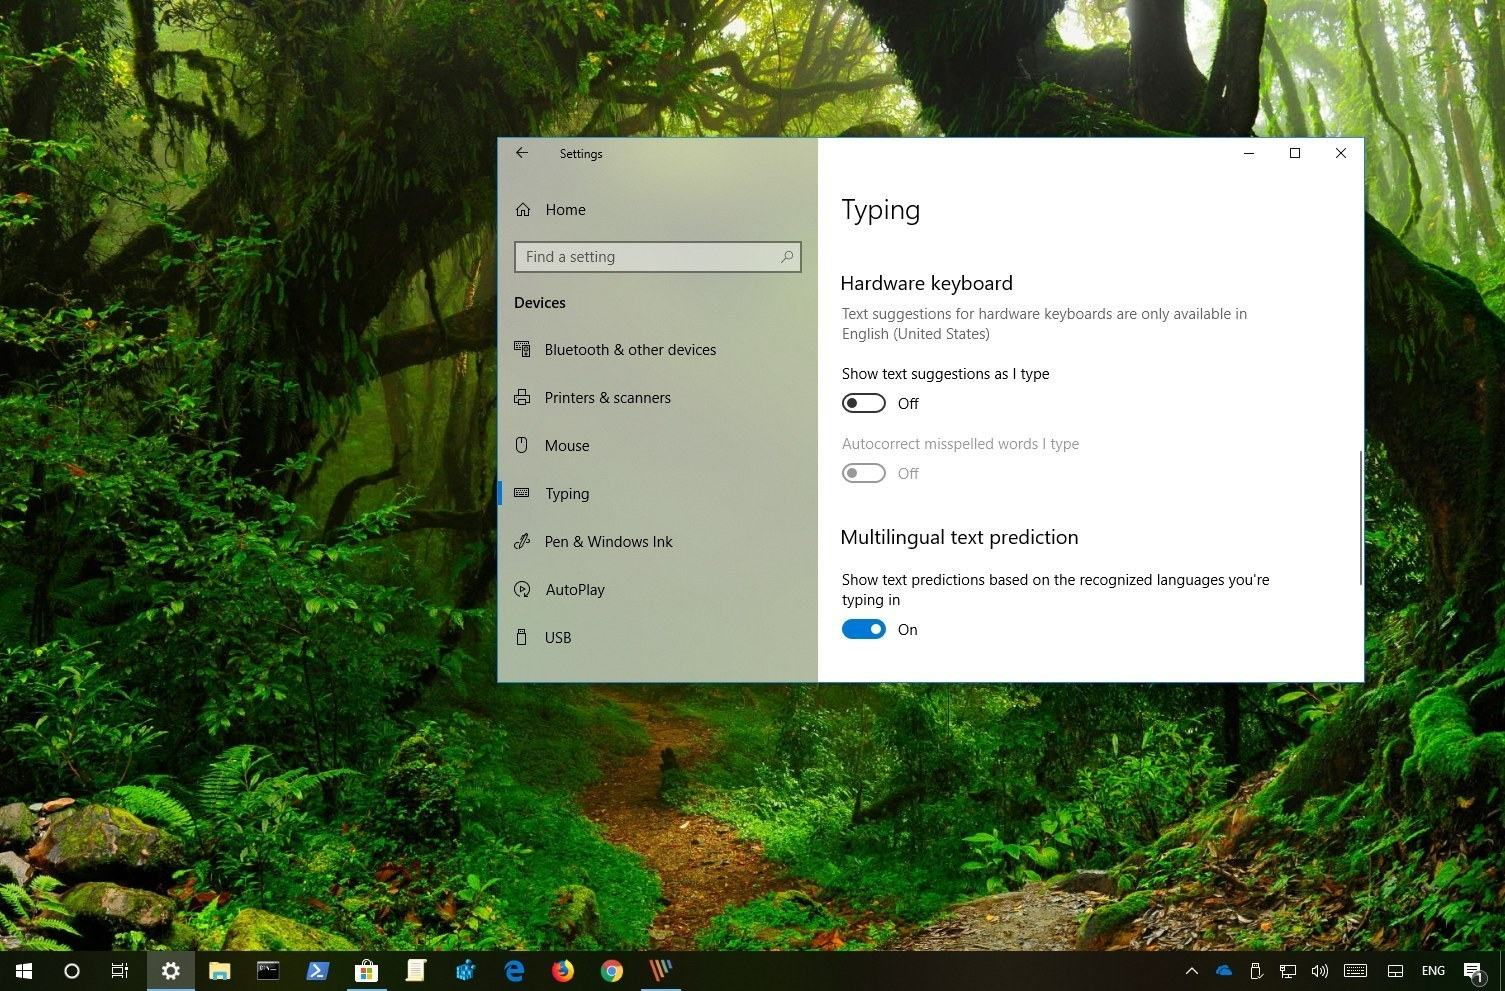 Multilingual text prediction settings on Windows 10